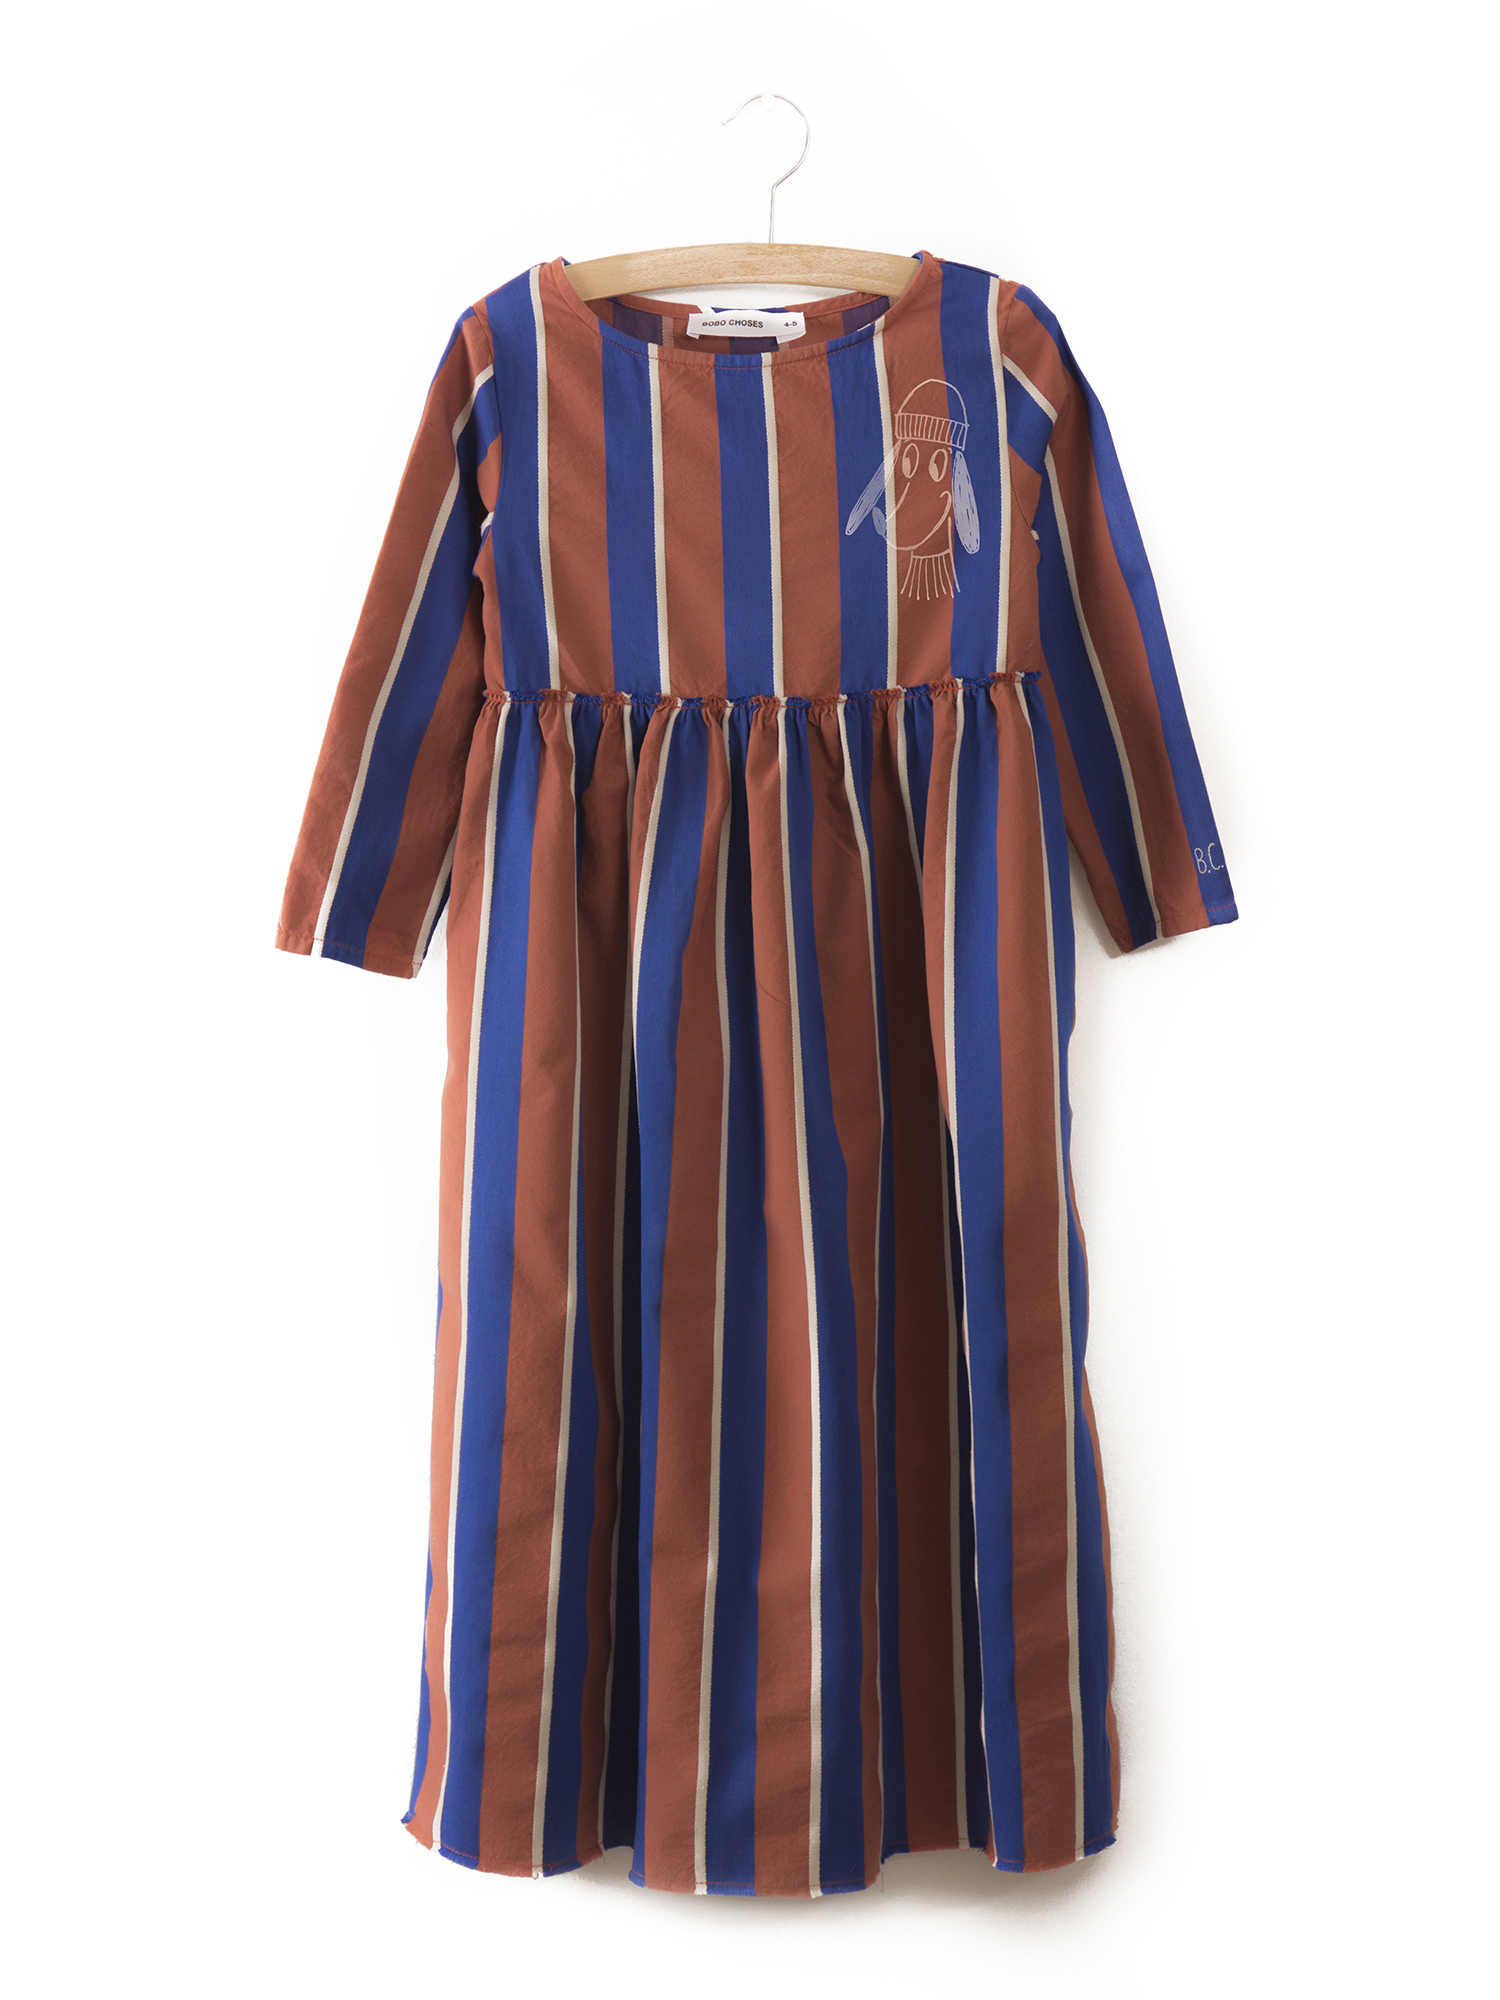 《BOBO CHOSES 2017AW》Awning stripes Princess Dress